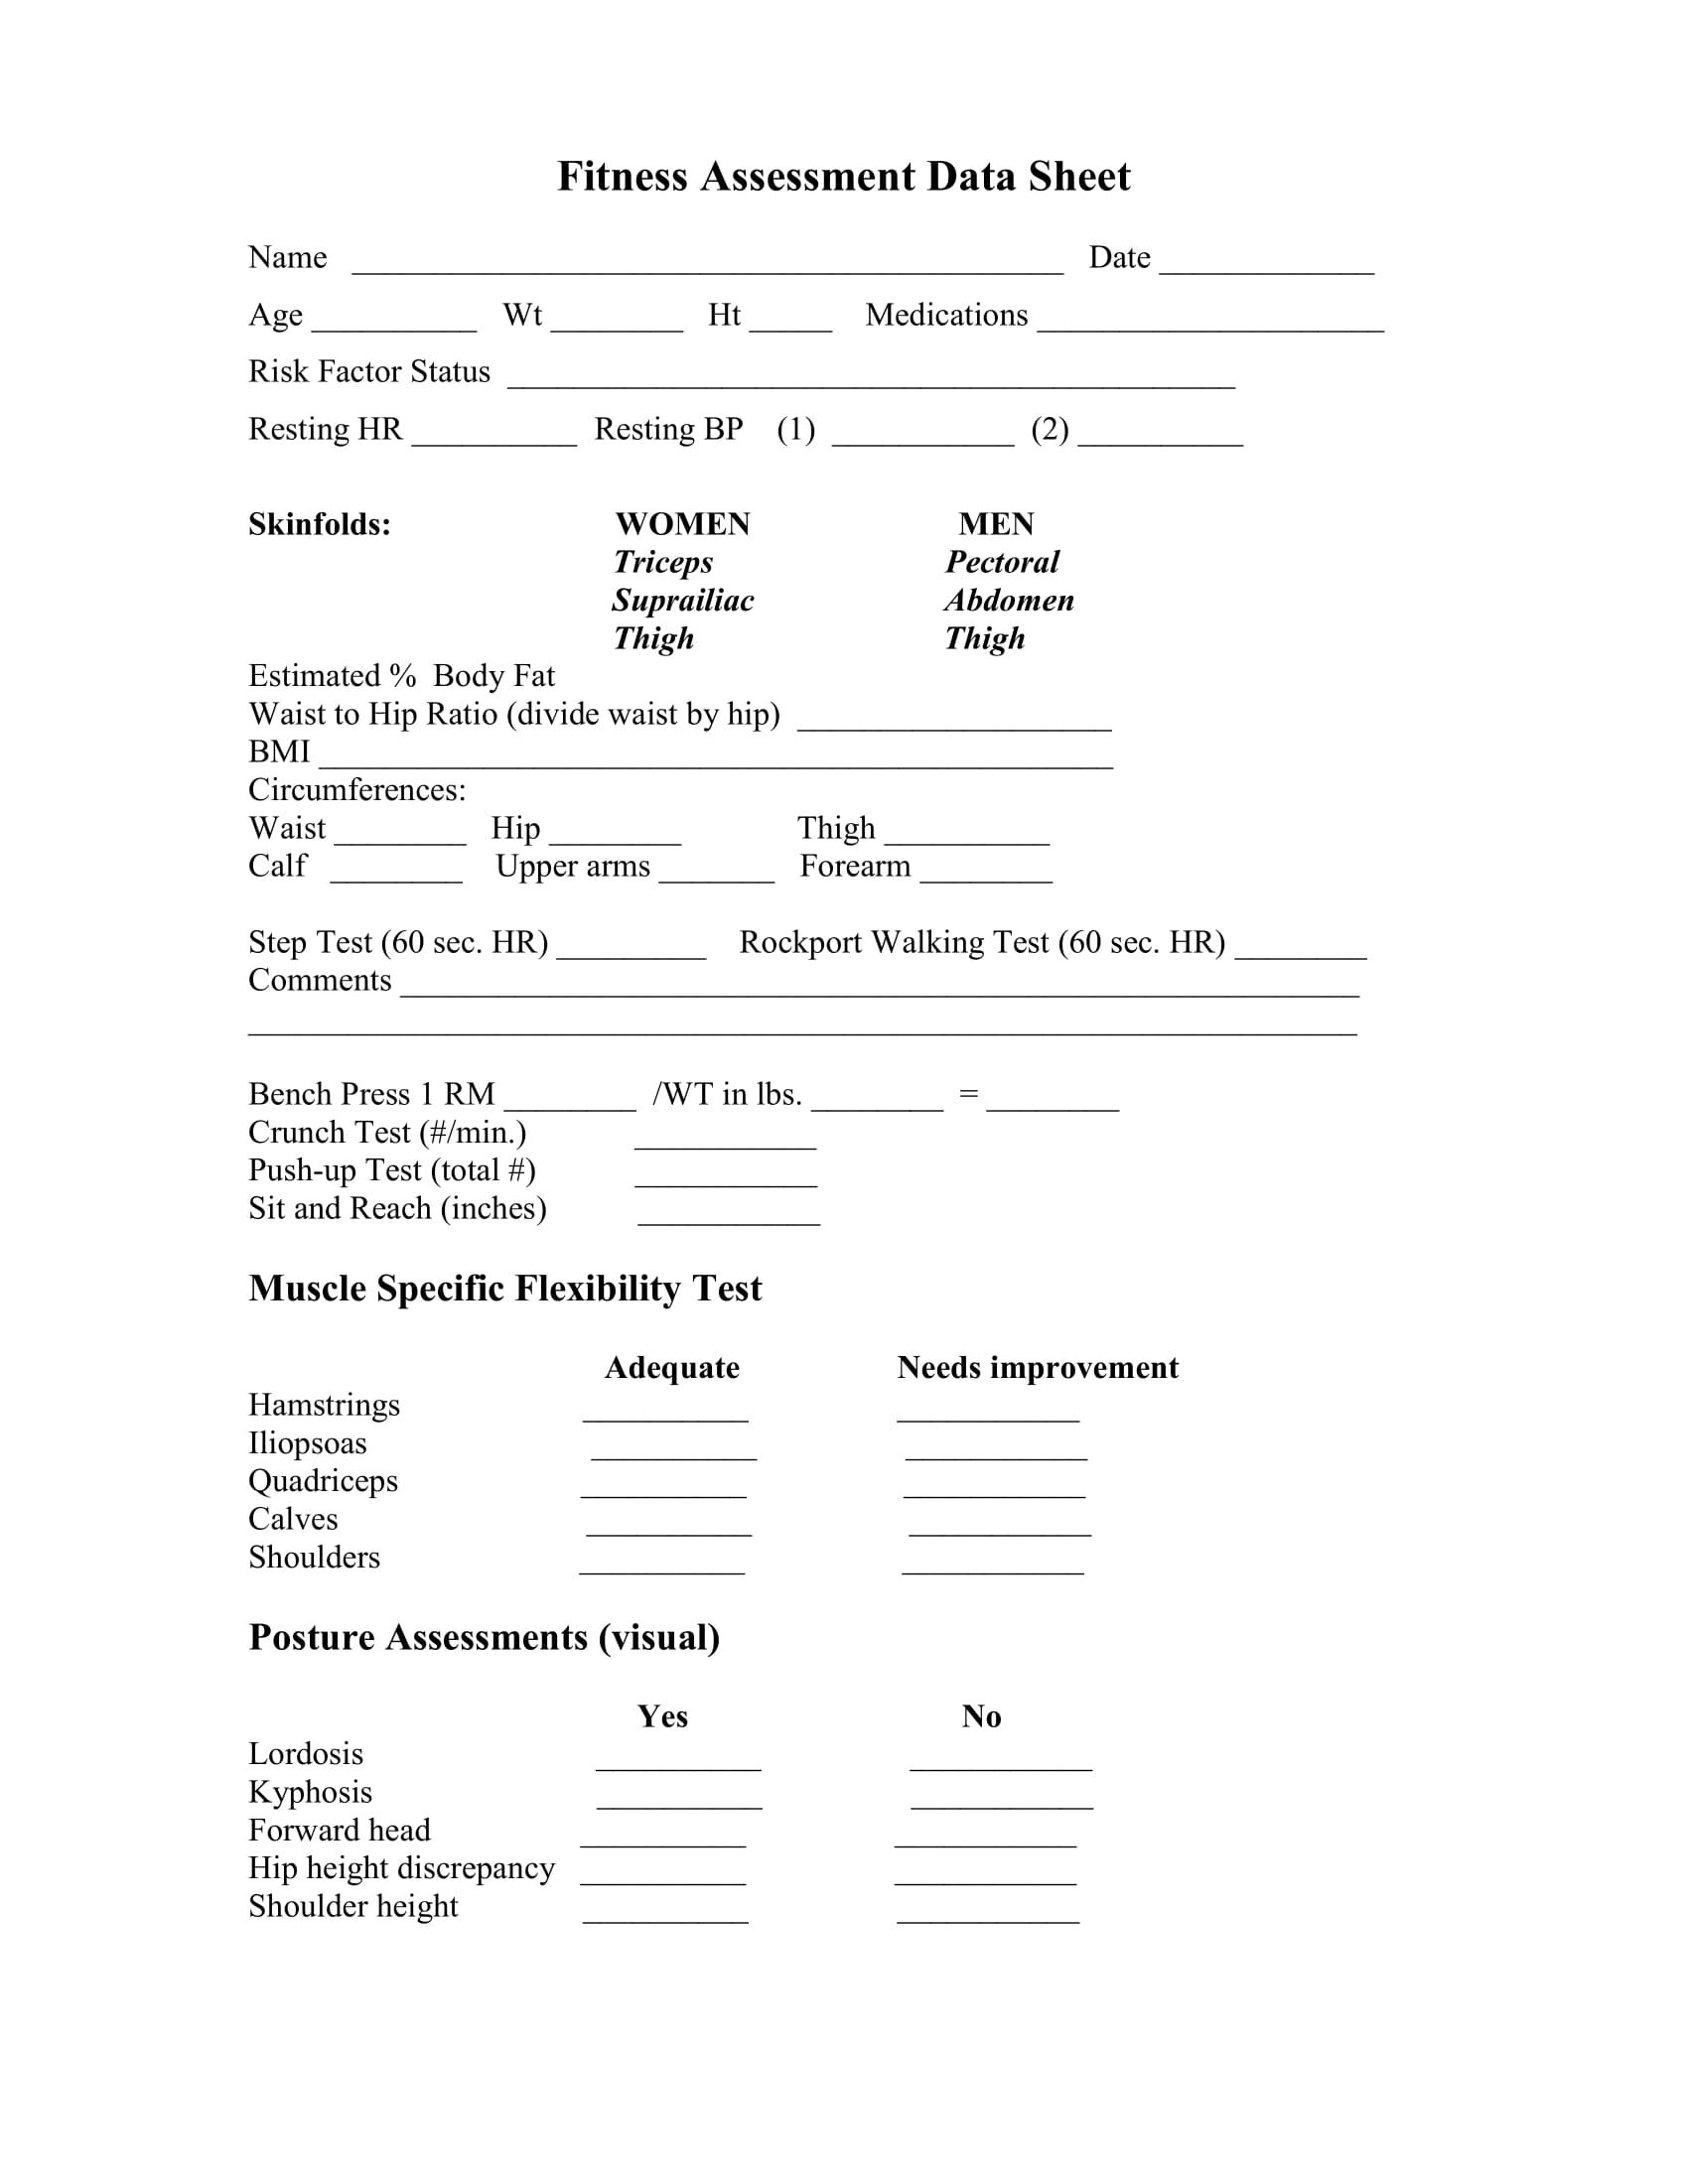 Fitness Assessment Form Personal Trainer Medical History Training Evaluation